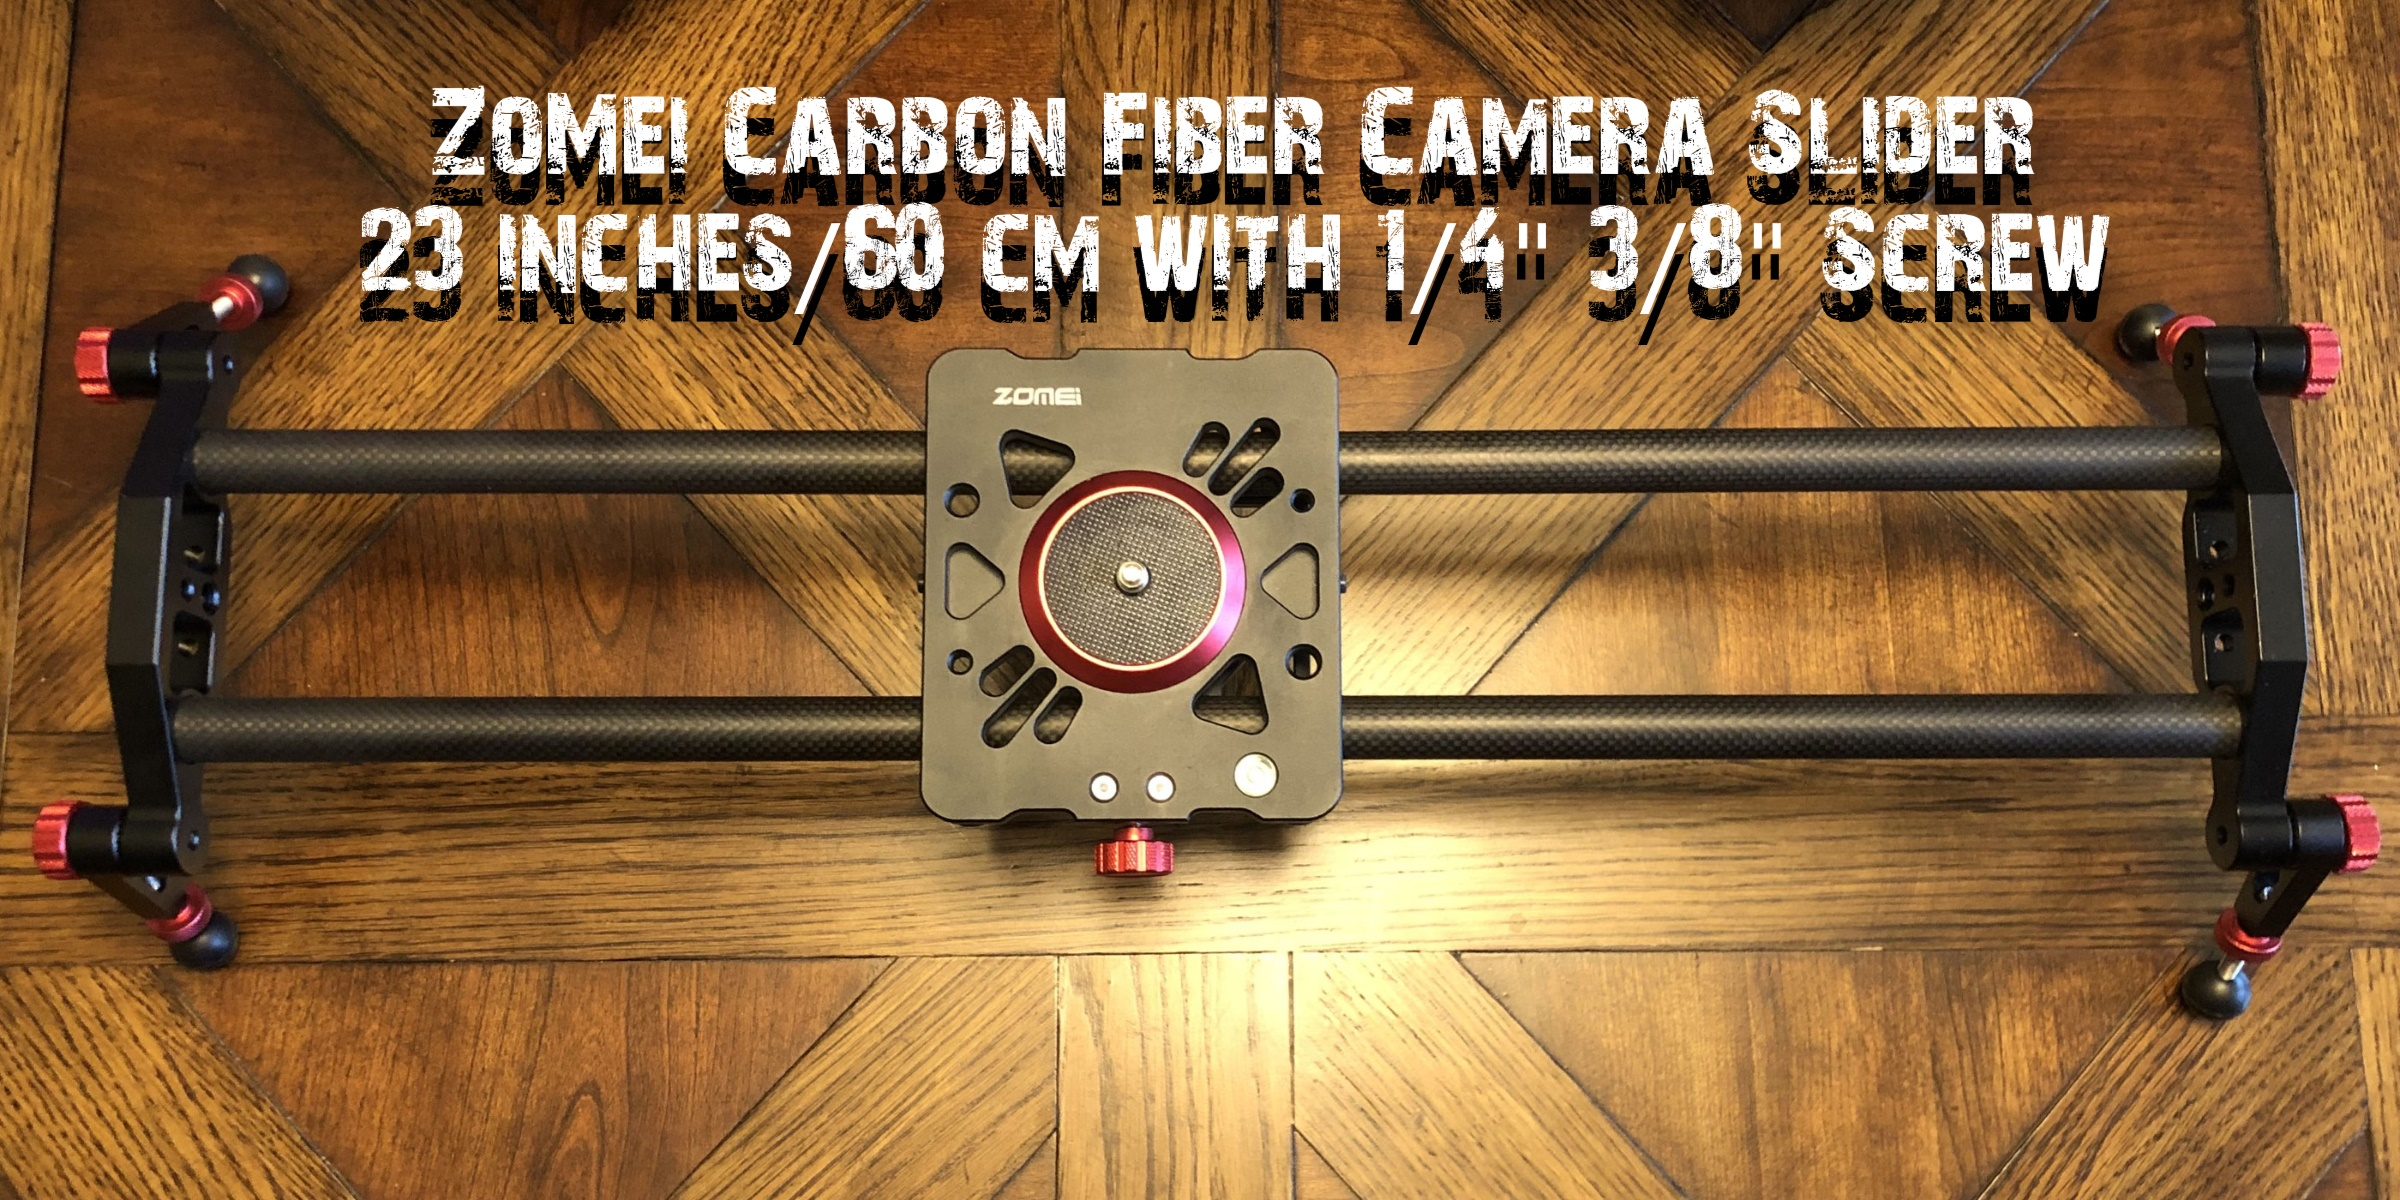 Super Smooth 23 Inch Carbon Fiber Camera Slider by ZoMei - DISCONTINUED